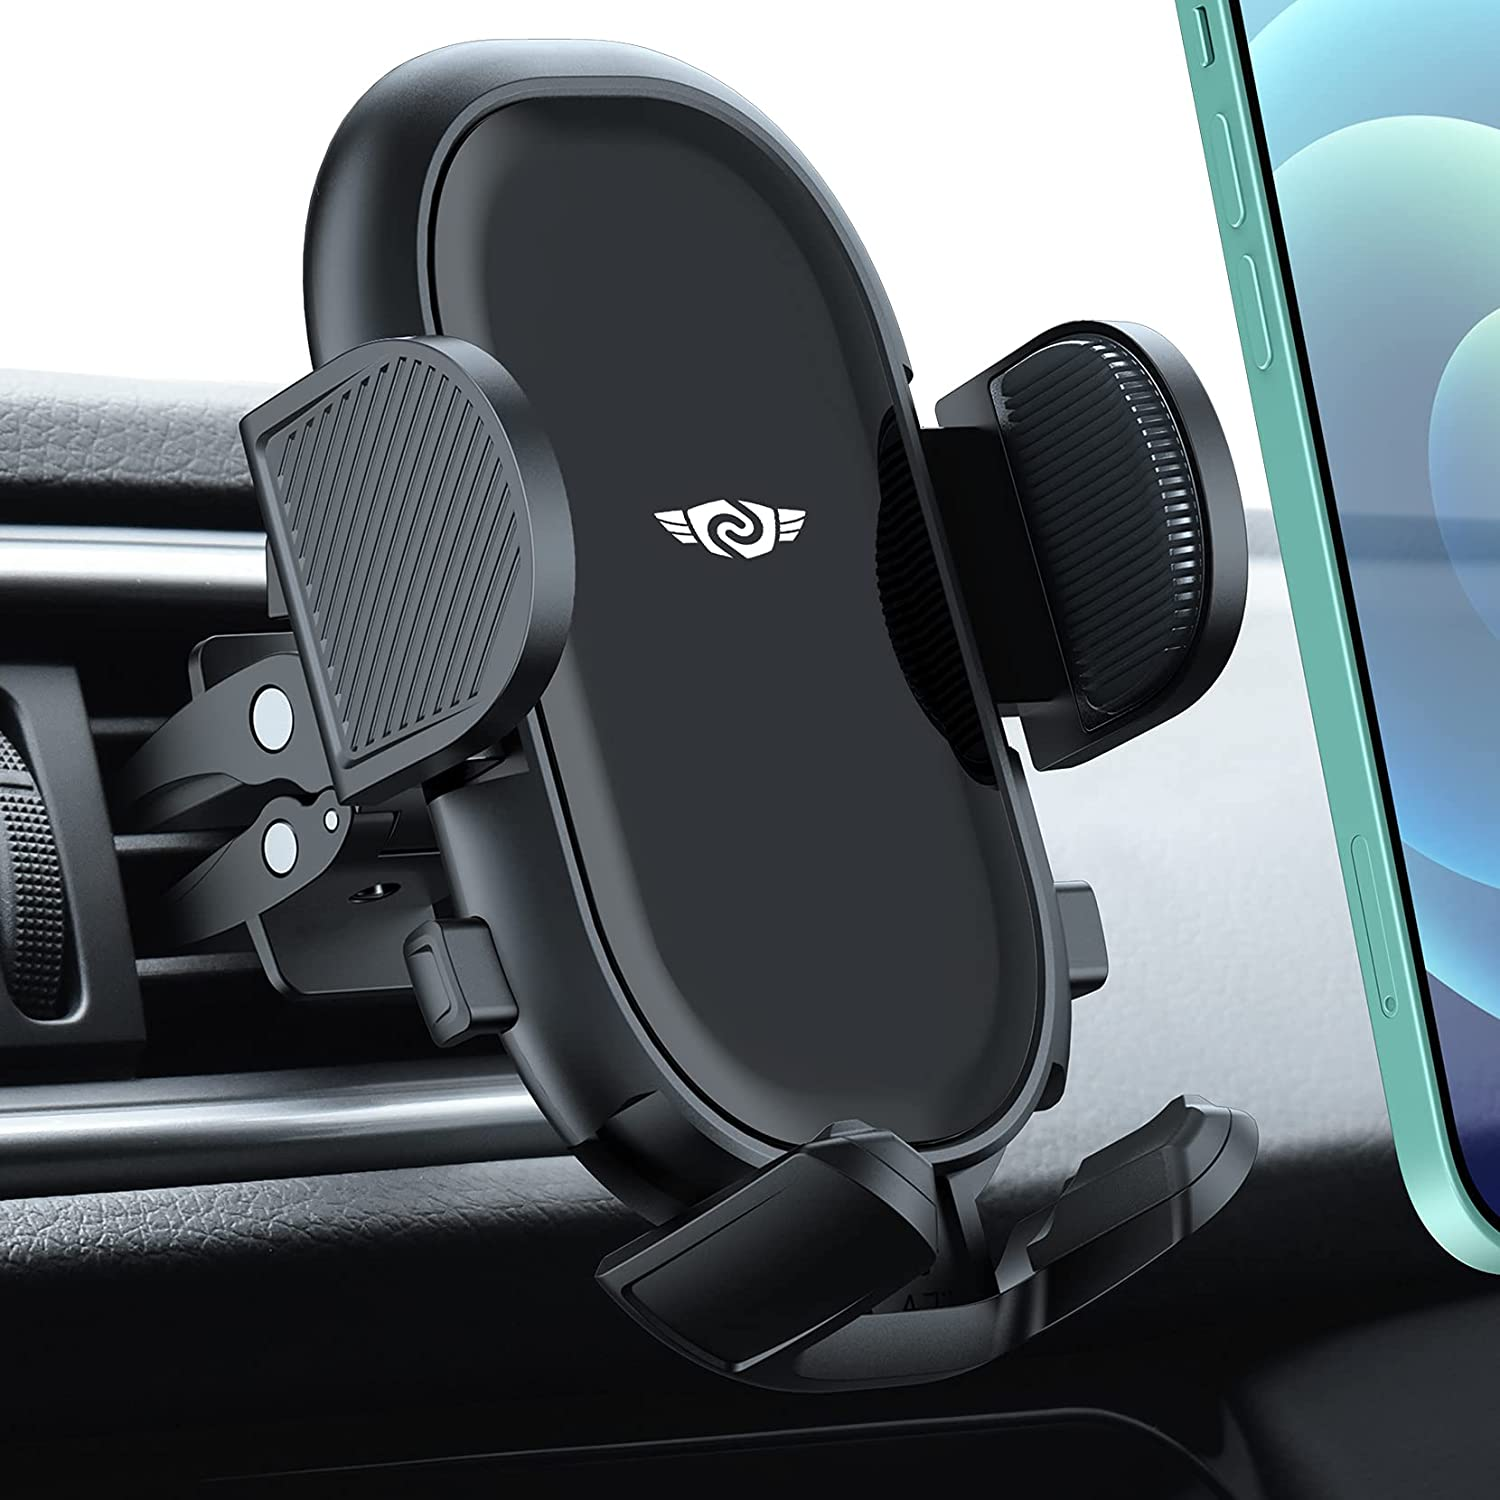 Car Phone Holder Mount, Air Vent Car Phone Mount with Stable Clip, Adjustable Support Feet Cell Phone Holder Compatible with iPhone 13 12 SE 11 Pro Max XS XR, Galaxy Note 20 S20 S10 and More